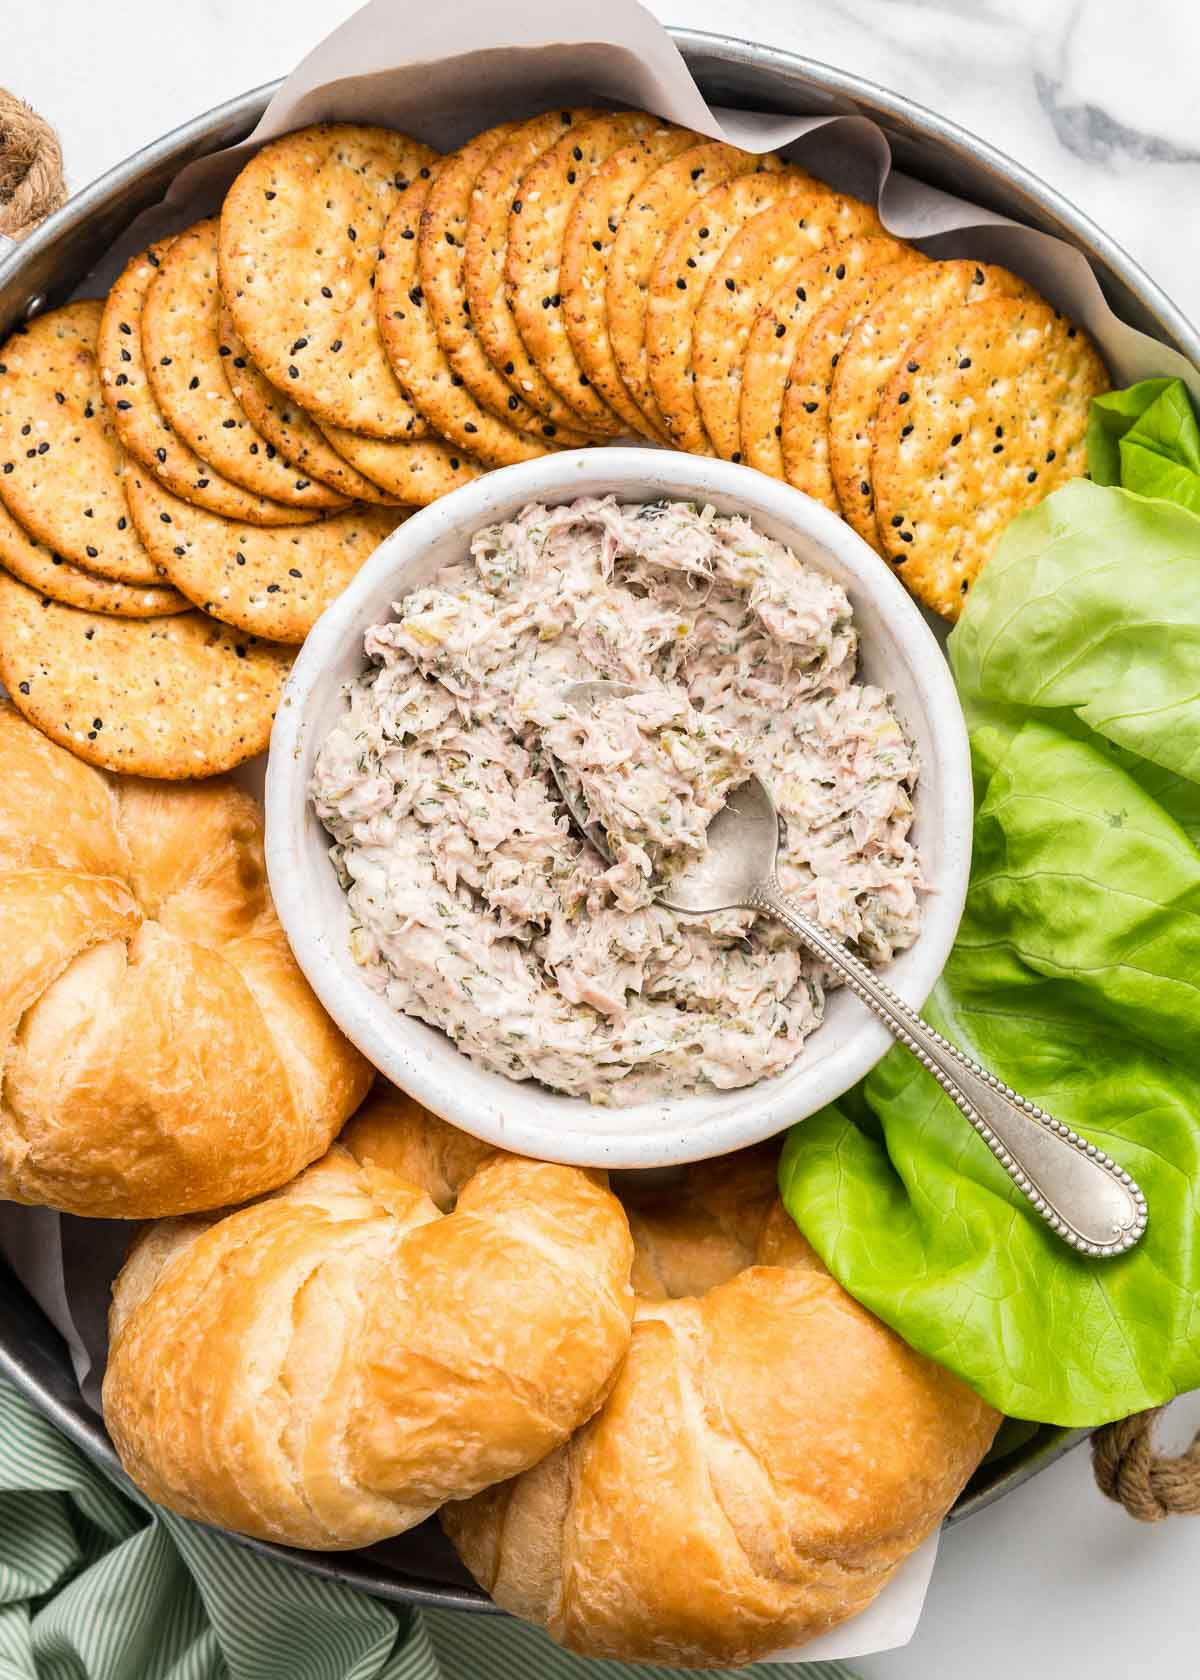 Tuna salad in a small serving dish surrounded by crackers and croissants